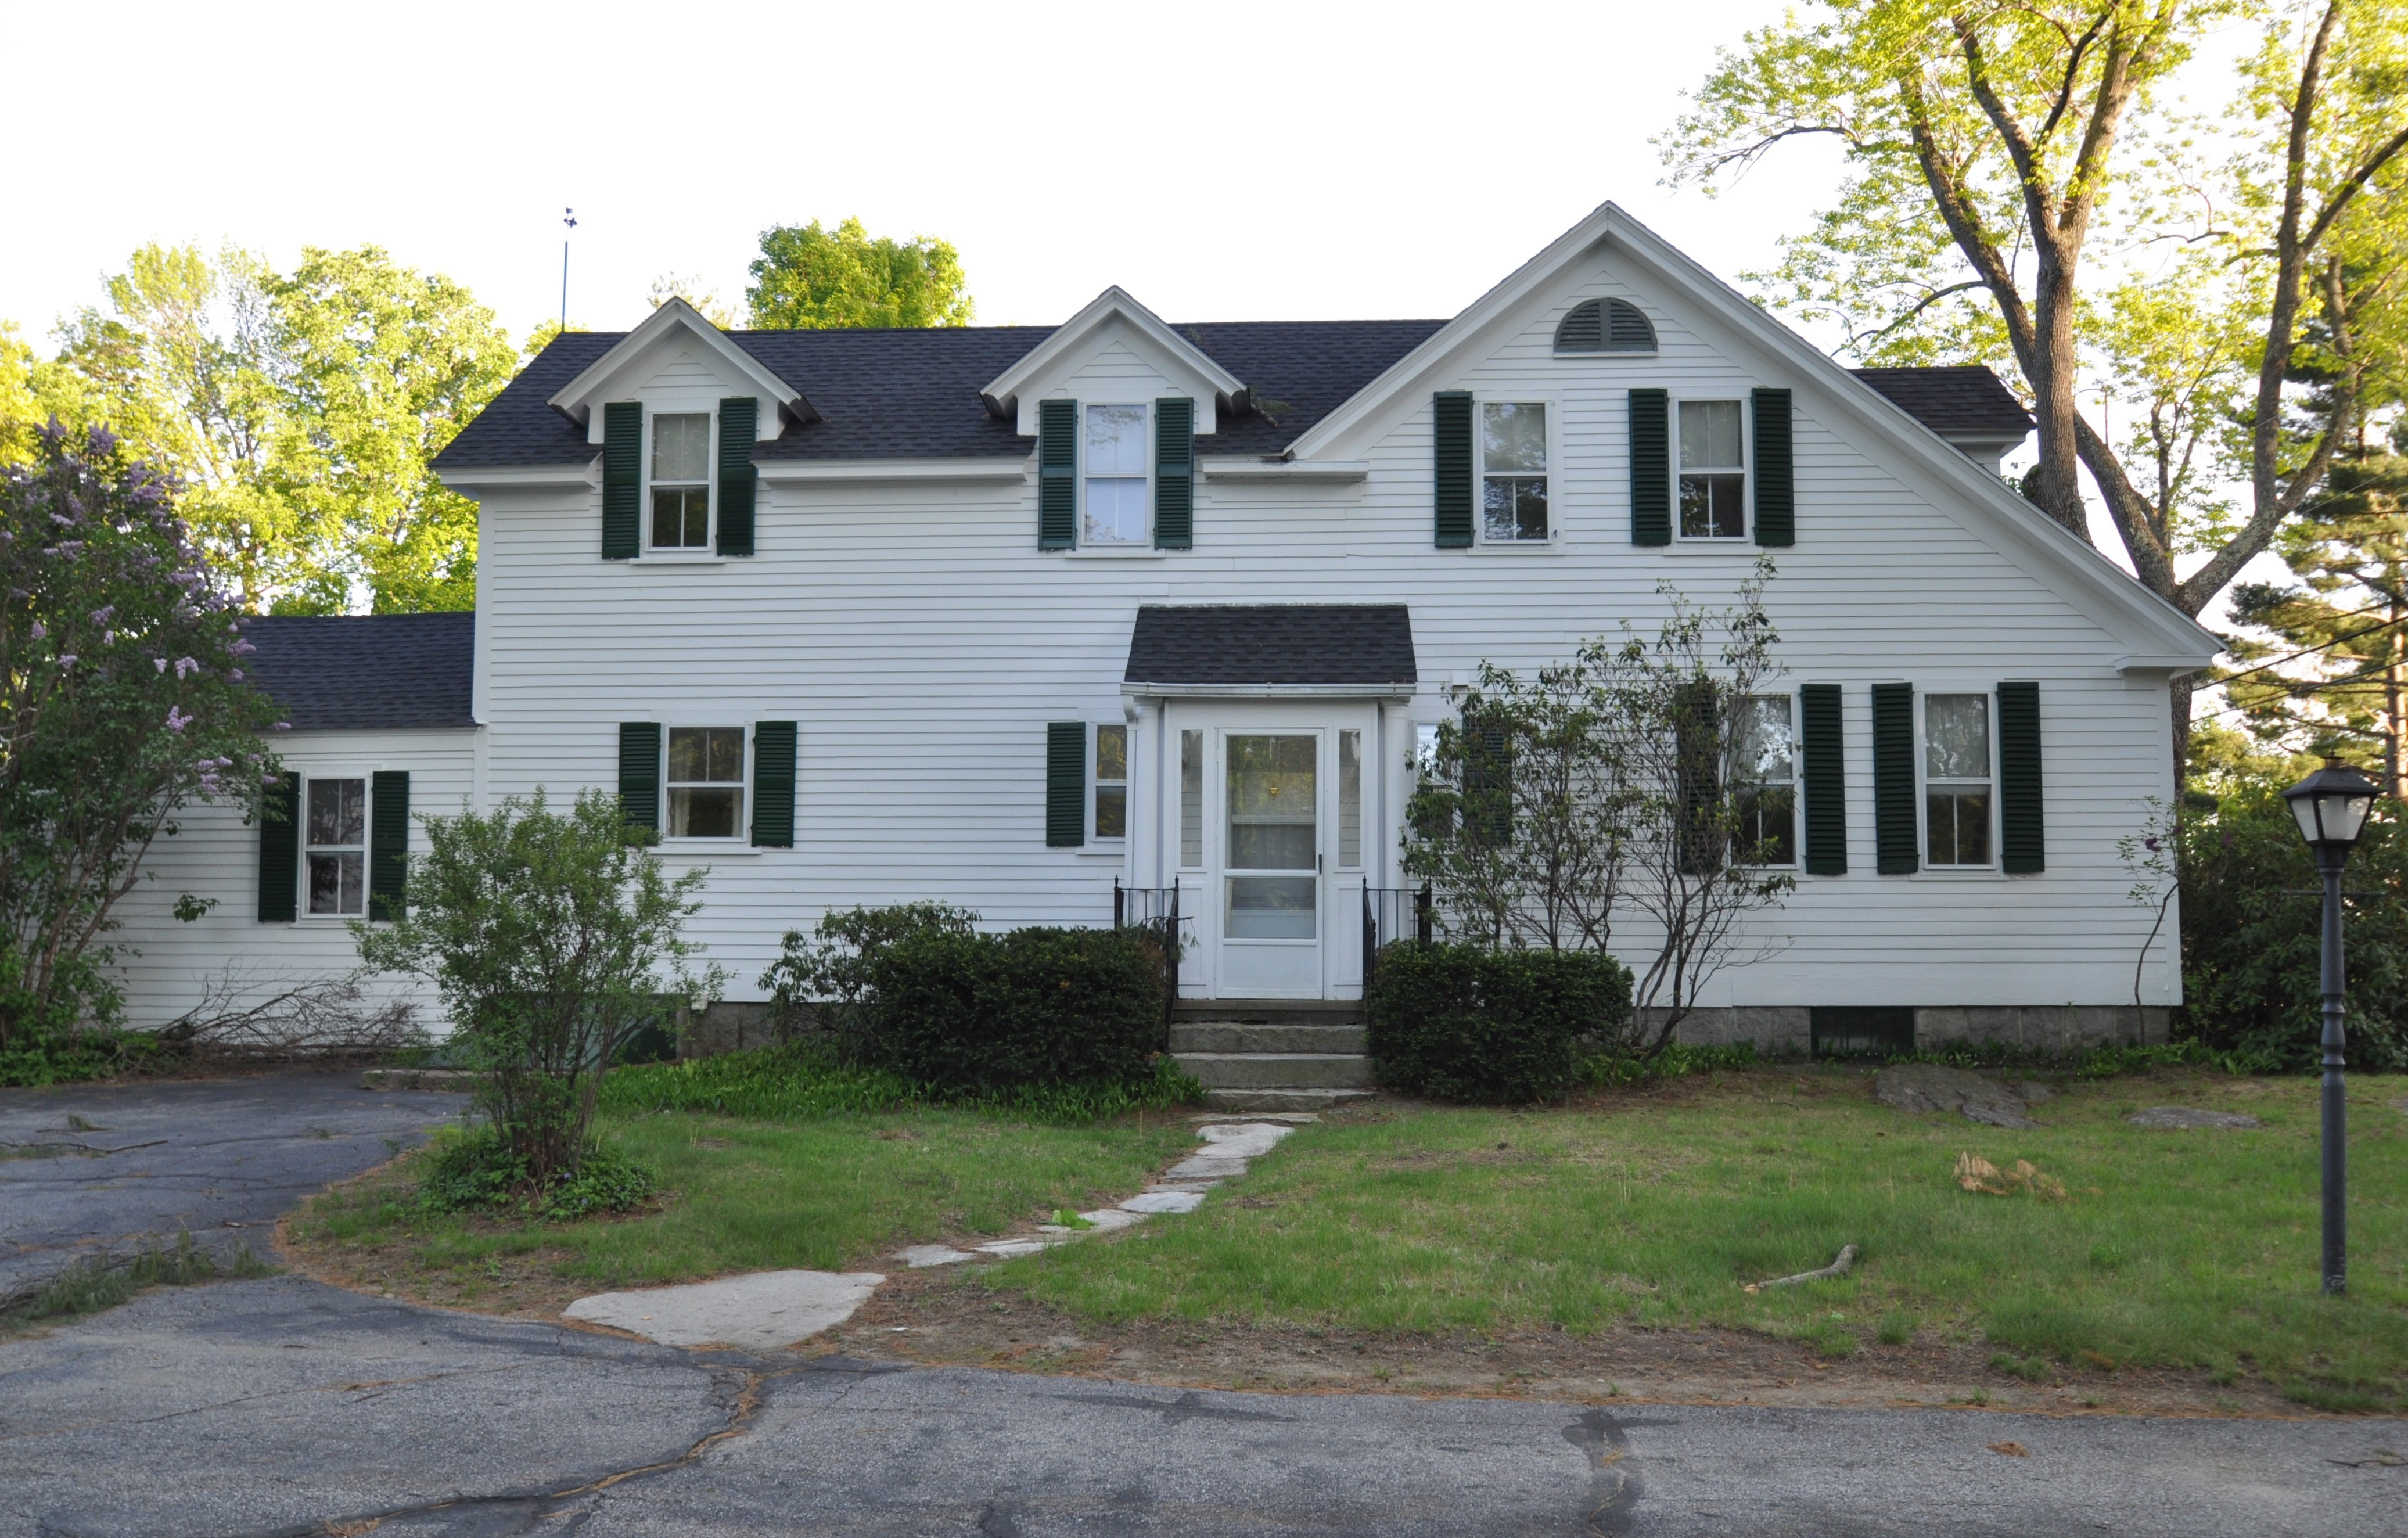 Single Family Home for Sale at 105 Old Street, Peterborough 105 Old Street Rd Peterborough, New Hampshire, 03048 United States